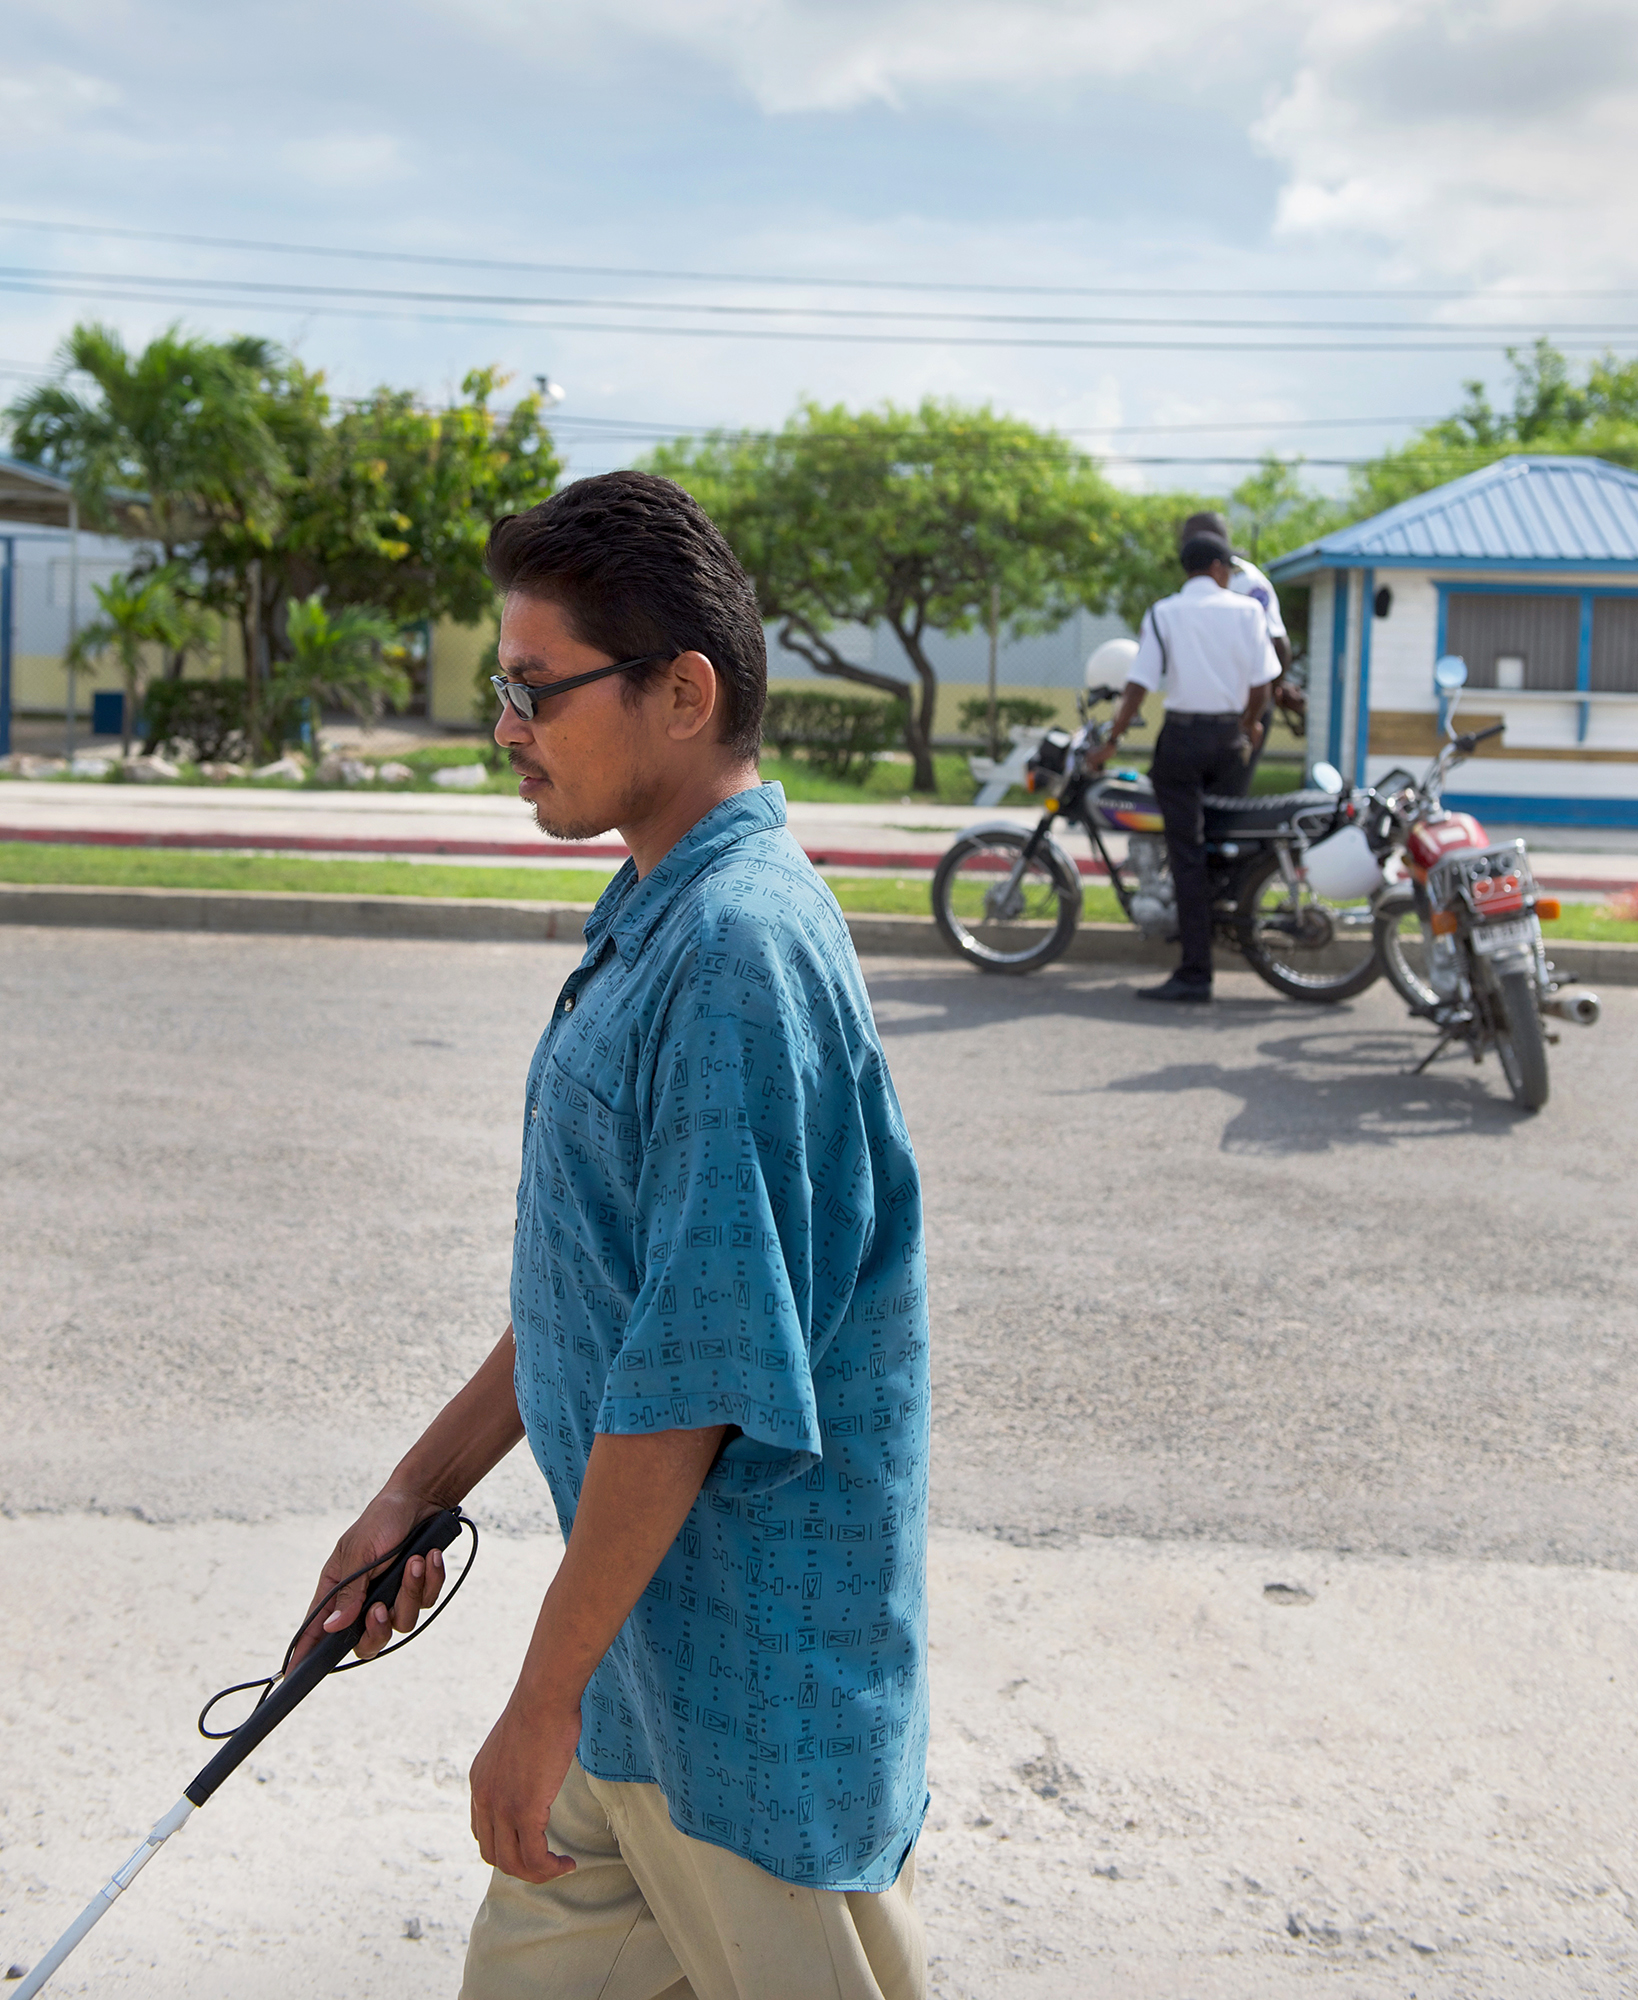 Victor Chan makes his way home from the BCVI Summer Camp. Belize City, Belize.